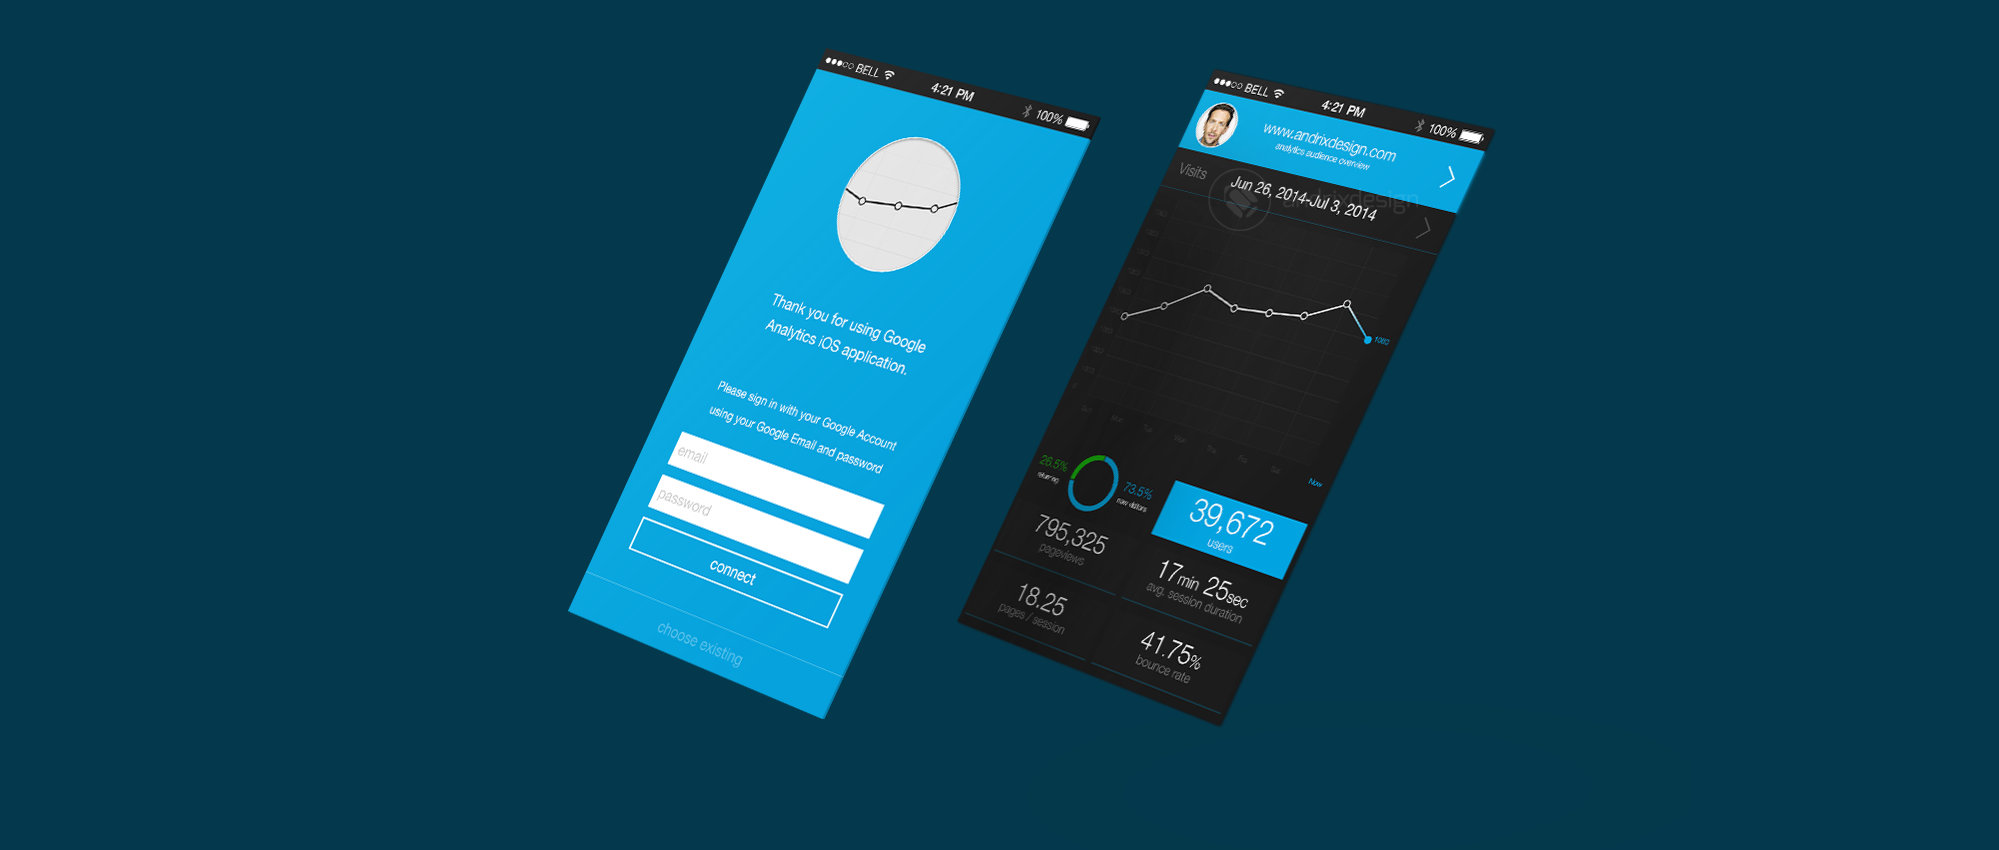 The analytics mobile application design